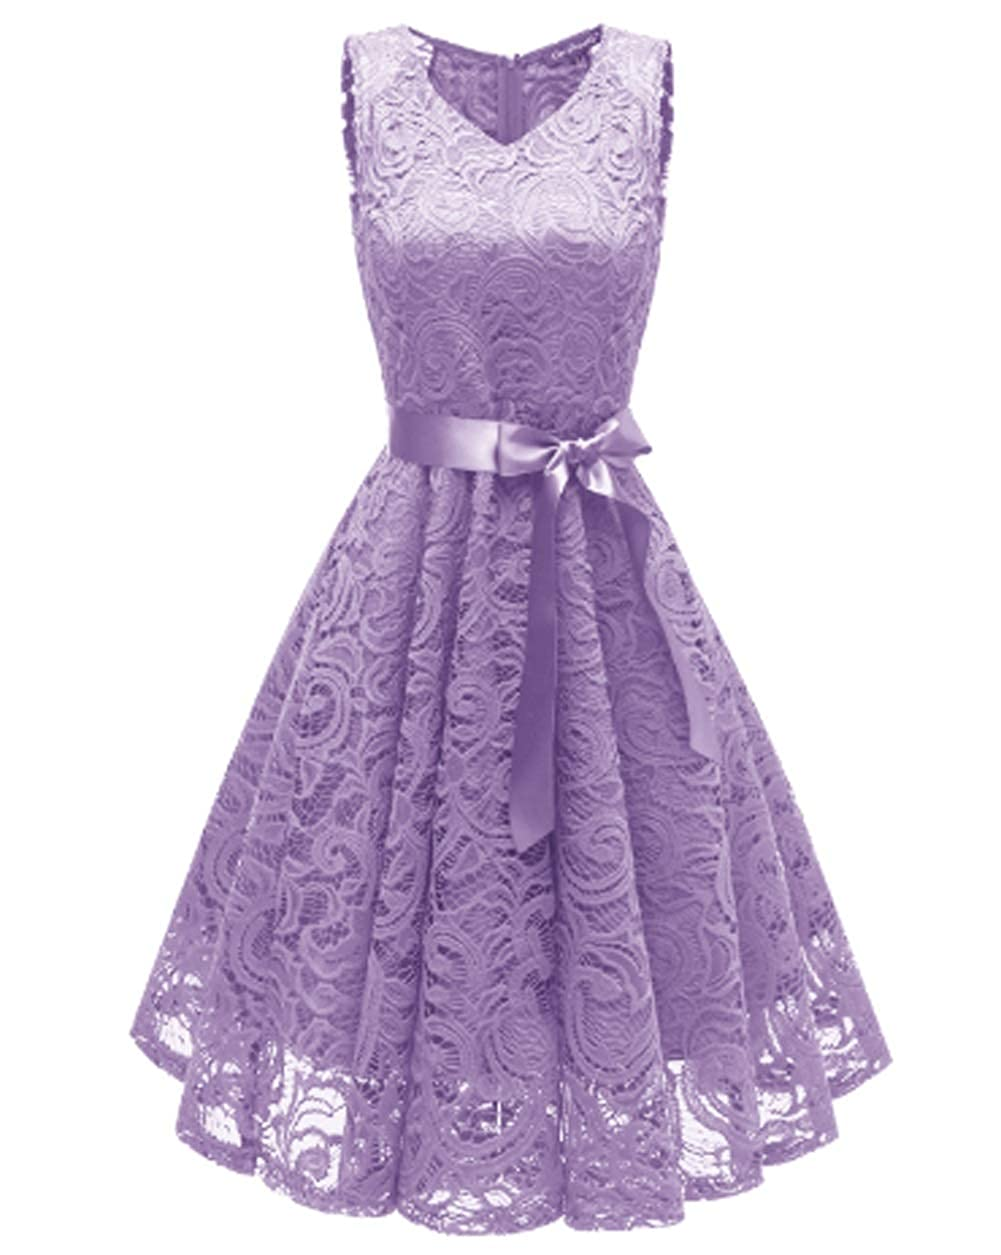 Light Purples Chowsir Women Fashion VNeck 3 4 Sleeve Formal Lace Evening Party Prom Midi Dress